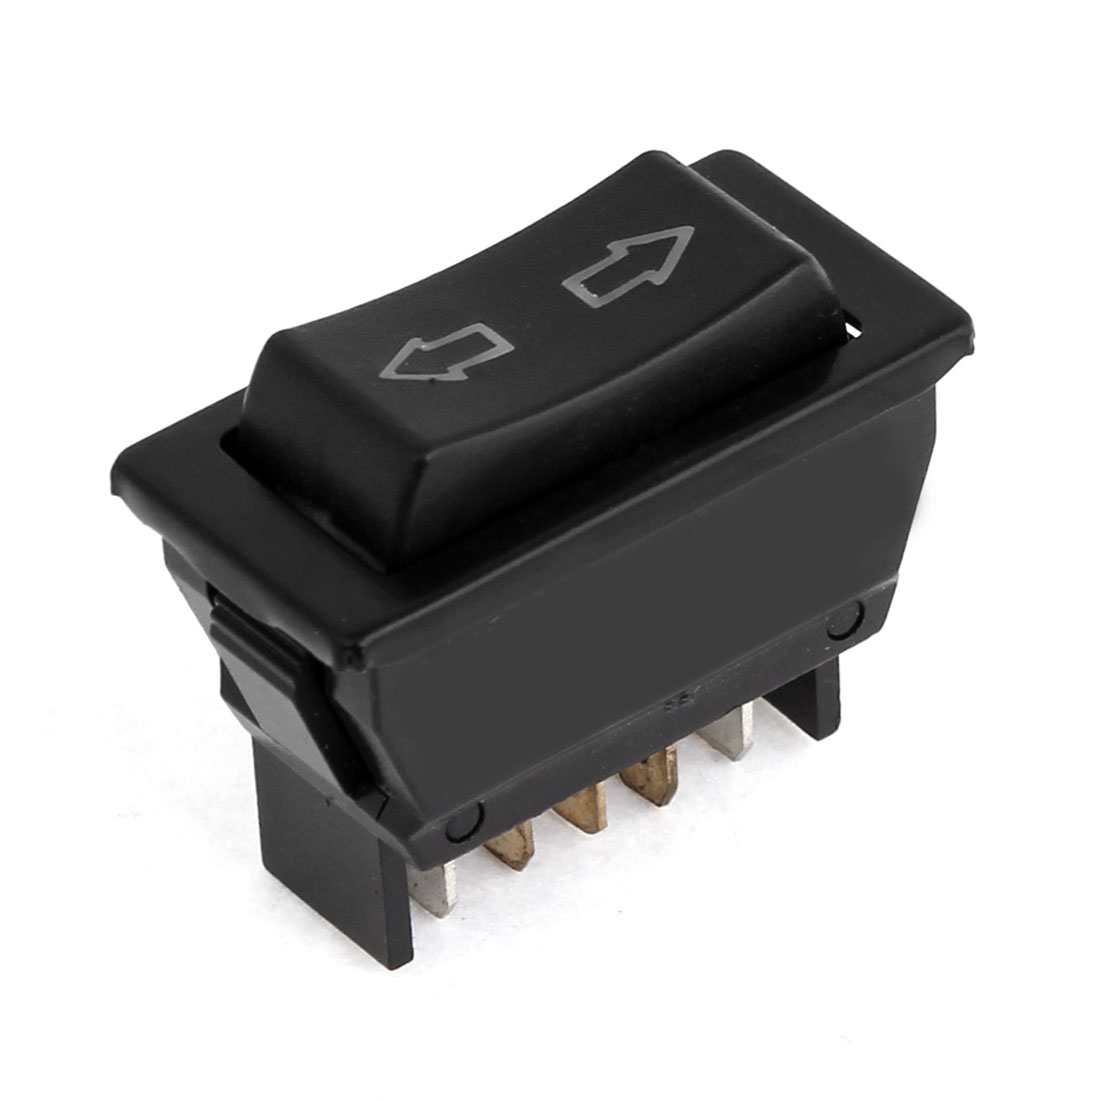 DC 12V Momentary 5 Pins DPDT Power Window Master Switch for Auto Car